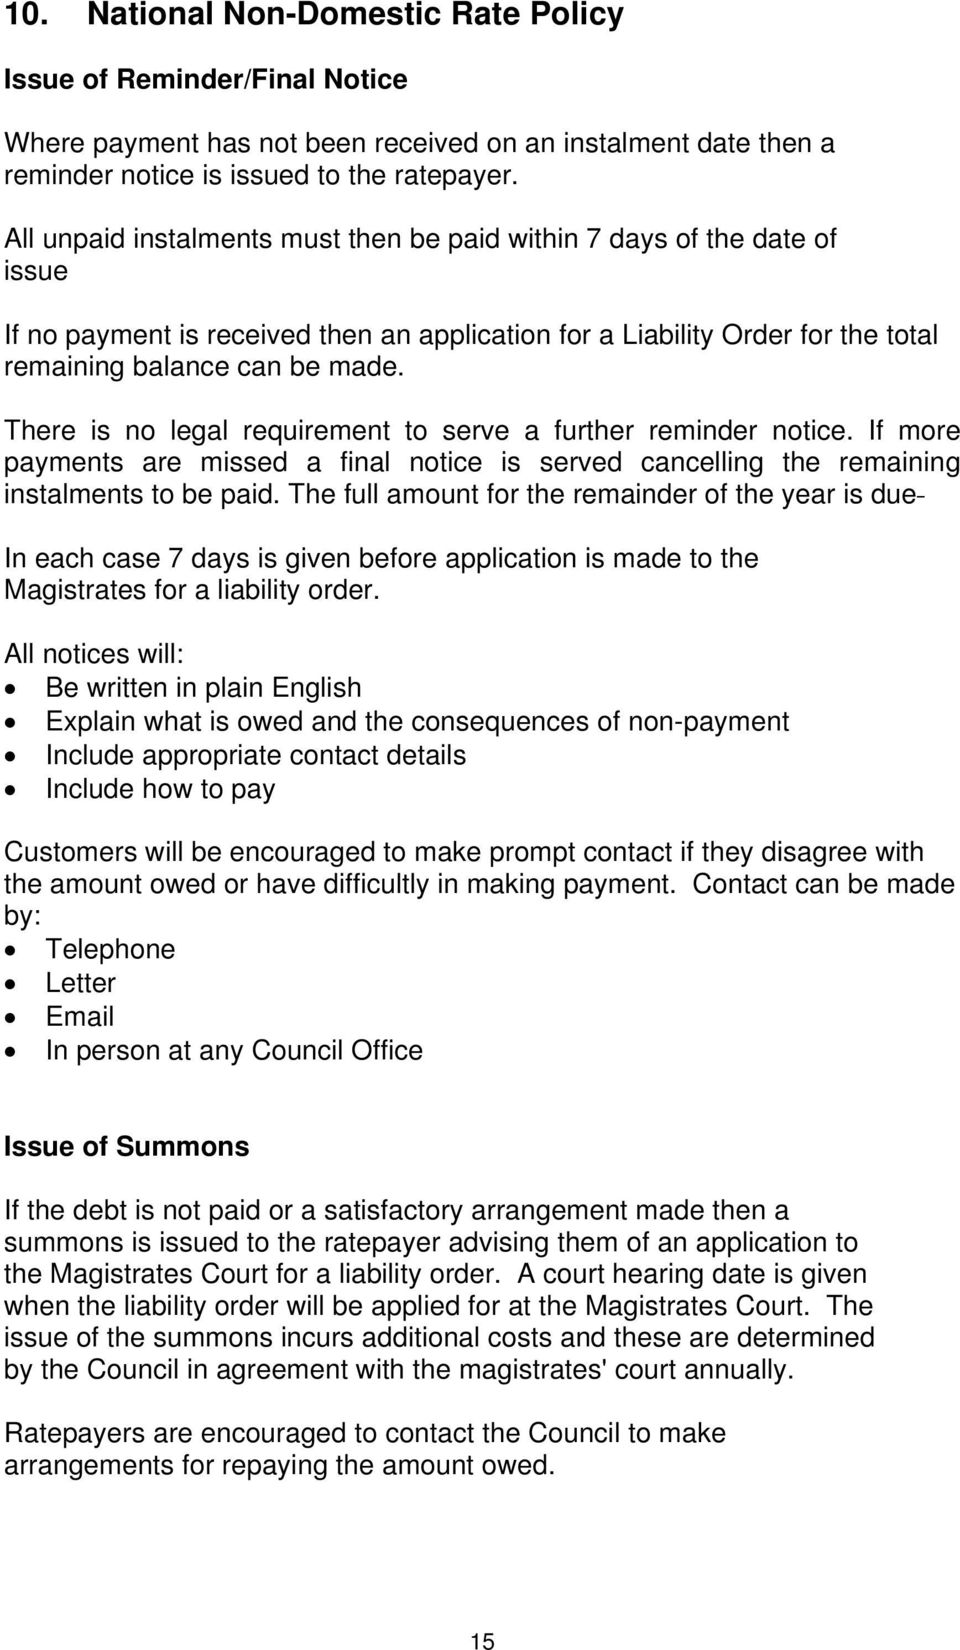 There is no legal requirement to serve a further reminder notice. If more payments are missed a final notice is served cancelling the remaining instalments to be paid.